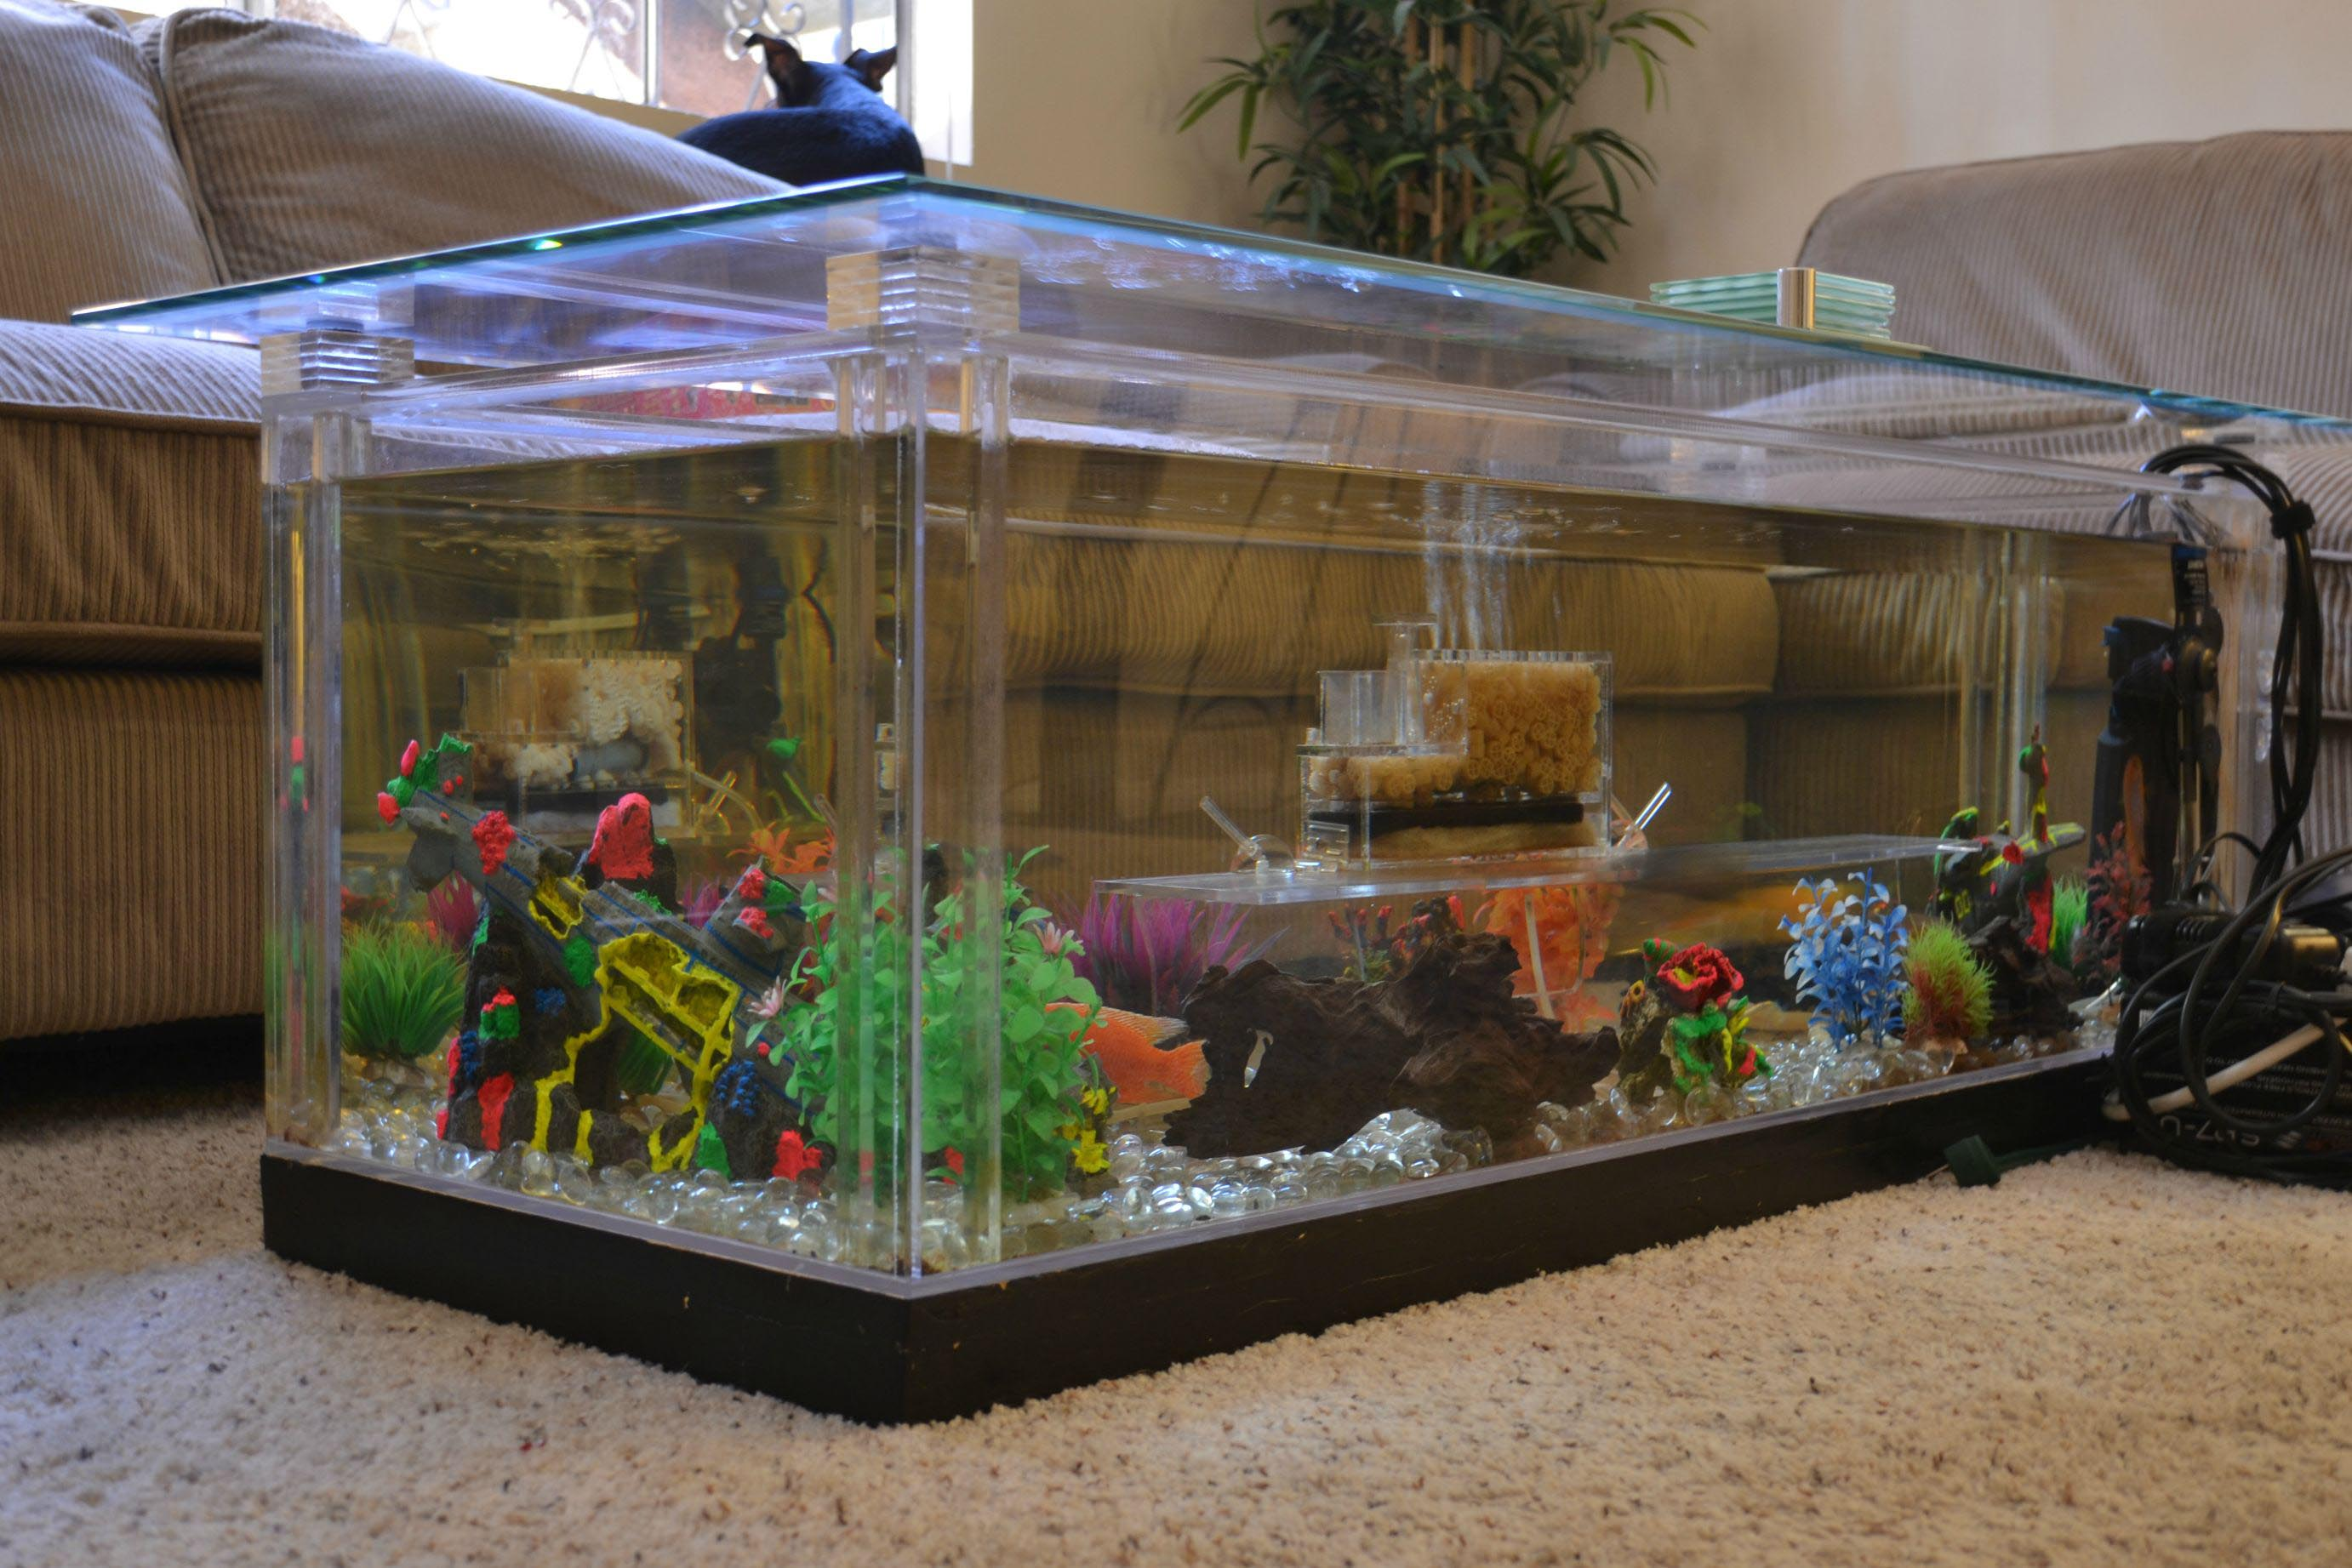 Aquarium coffee table diy coffee table design ideas - Aquarium coffee table diy ...